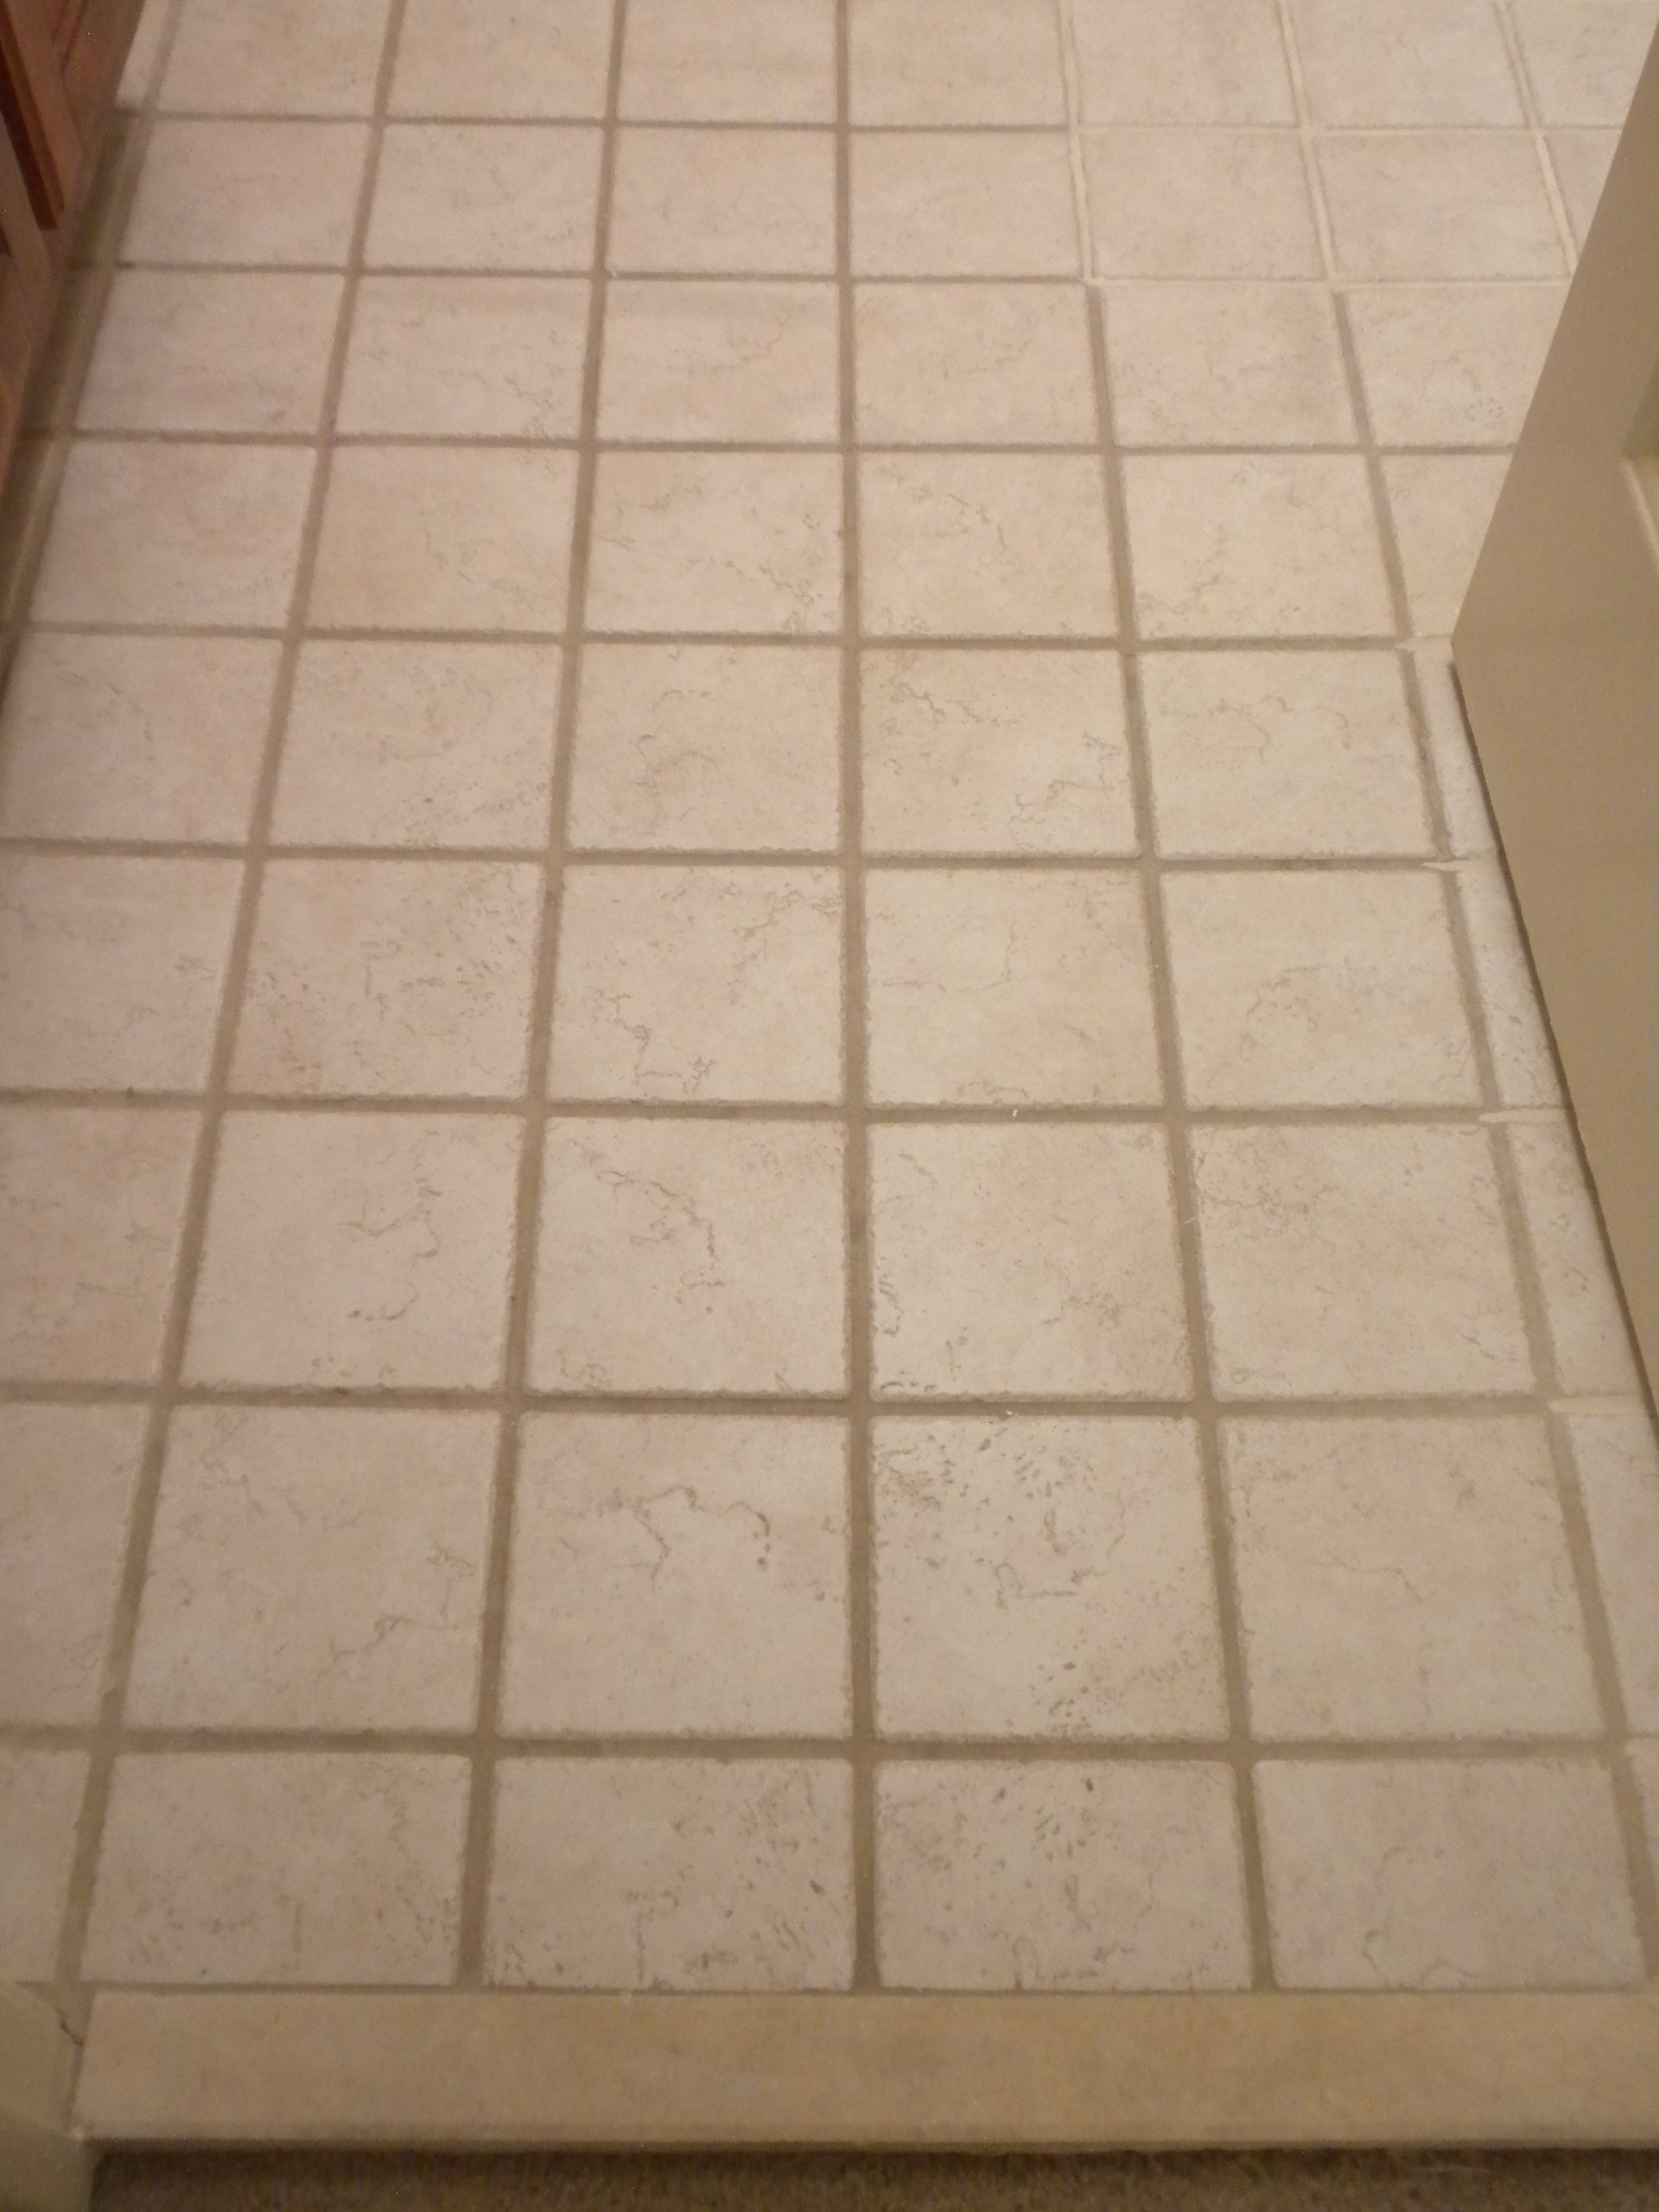 Grout Re-Color & Staining in Richmond VA | Re-Grouting Specialist ...